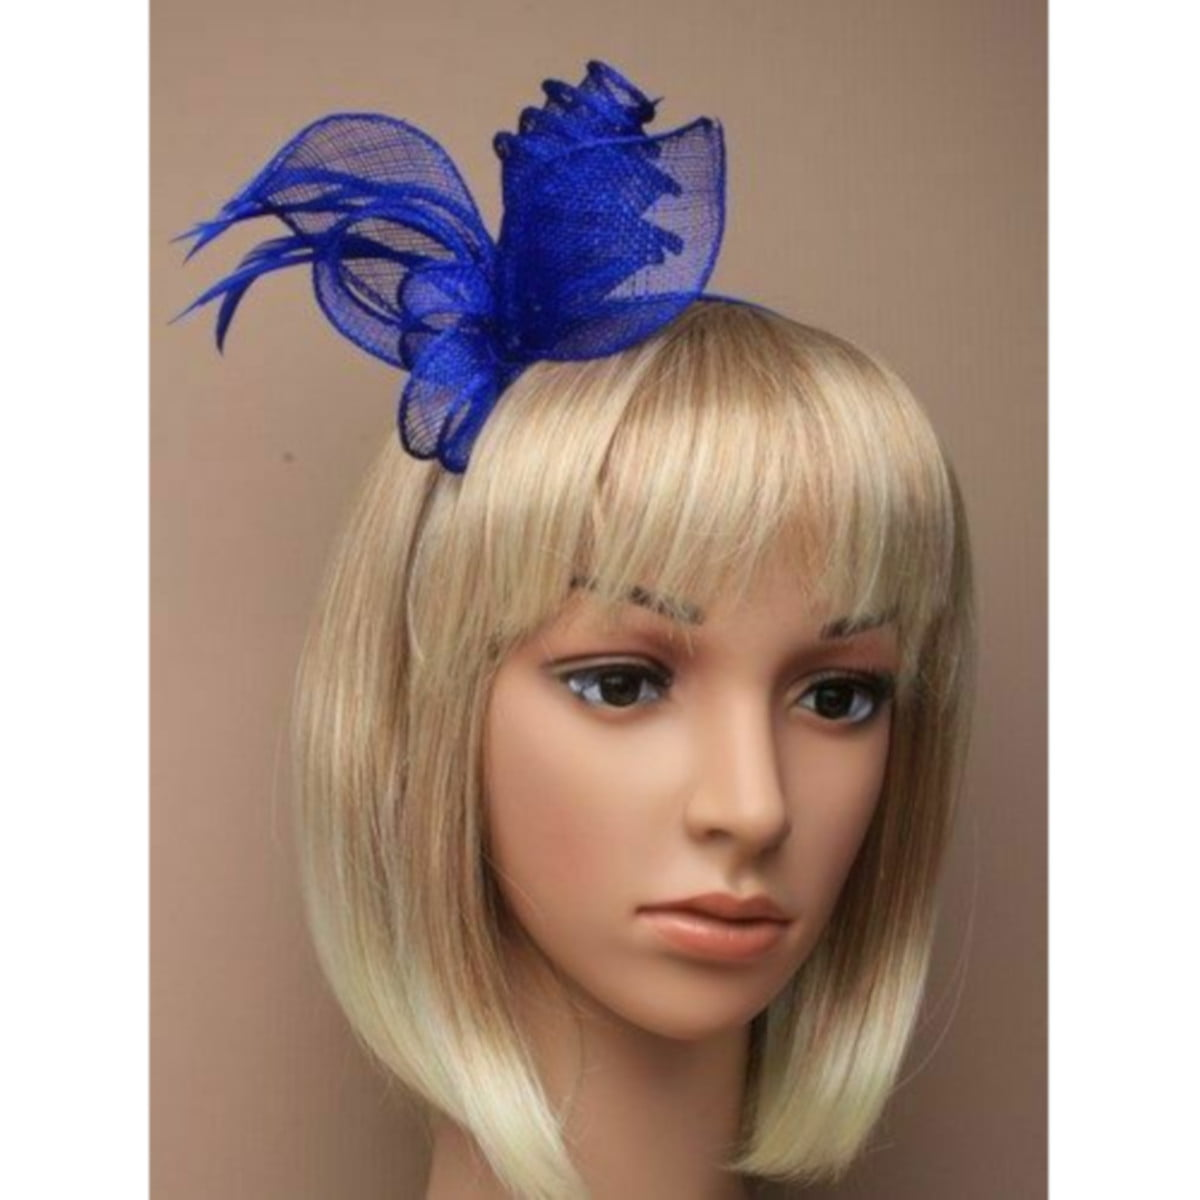 Royal Blue coiled and looped fascinator on aliceband